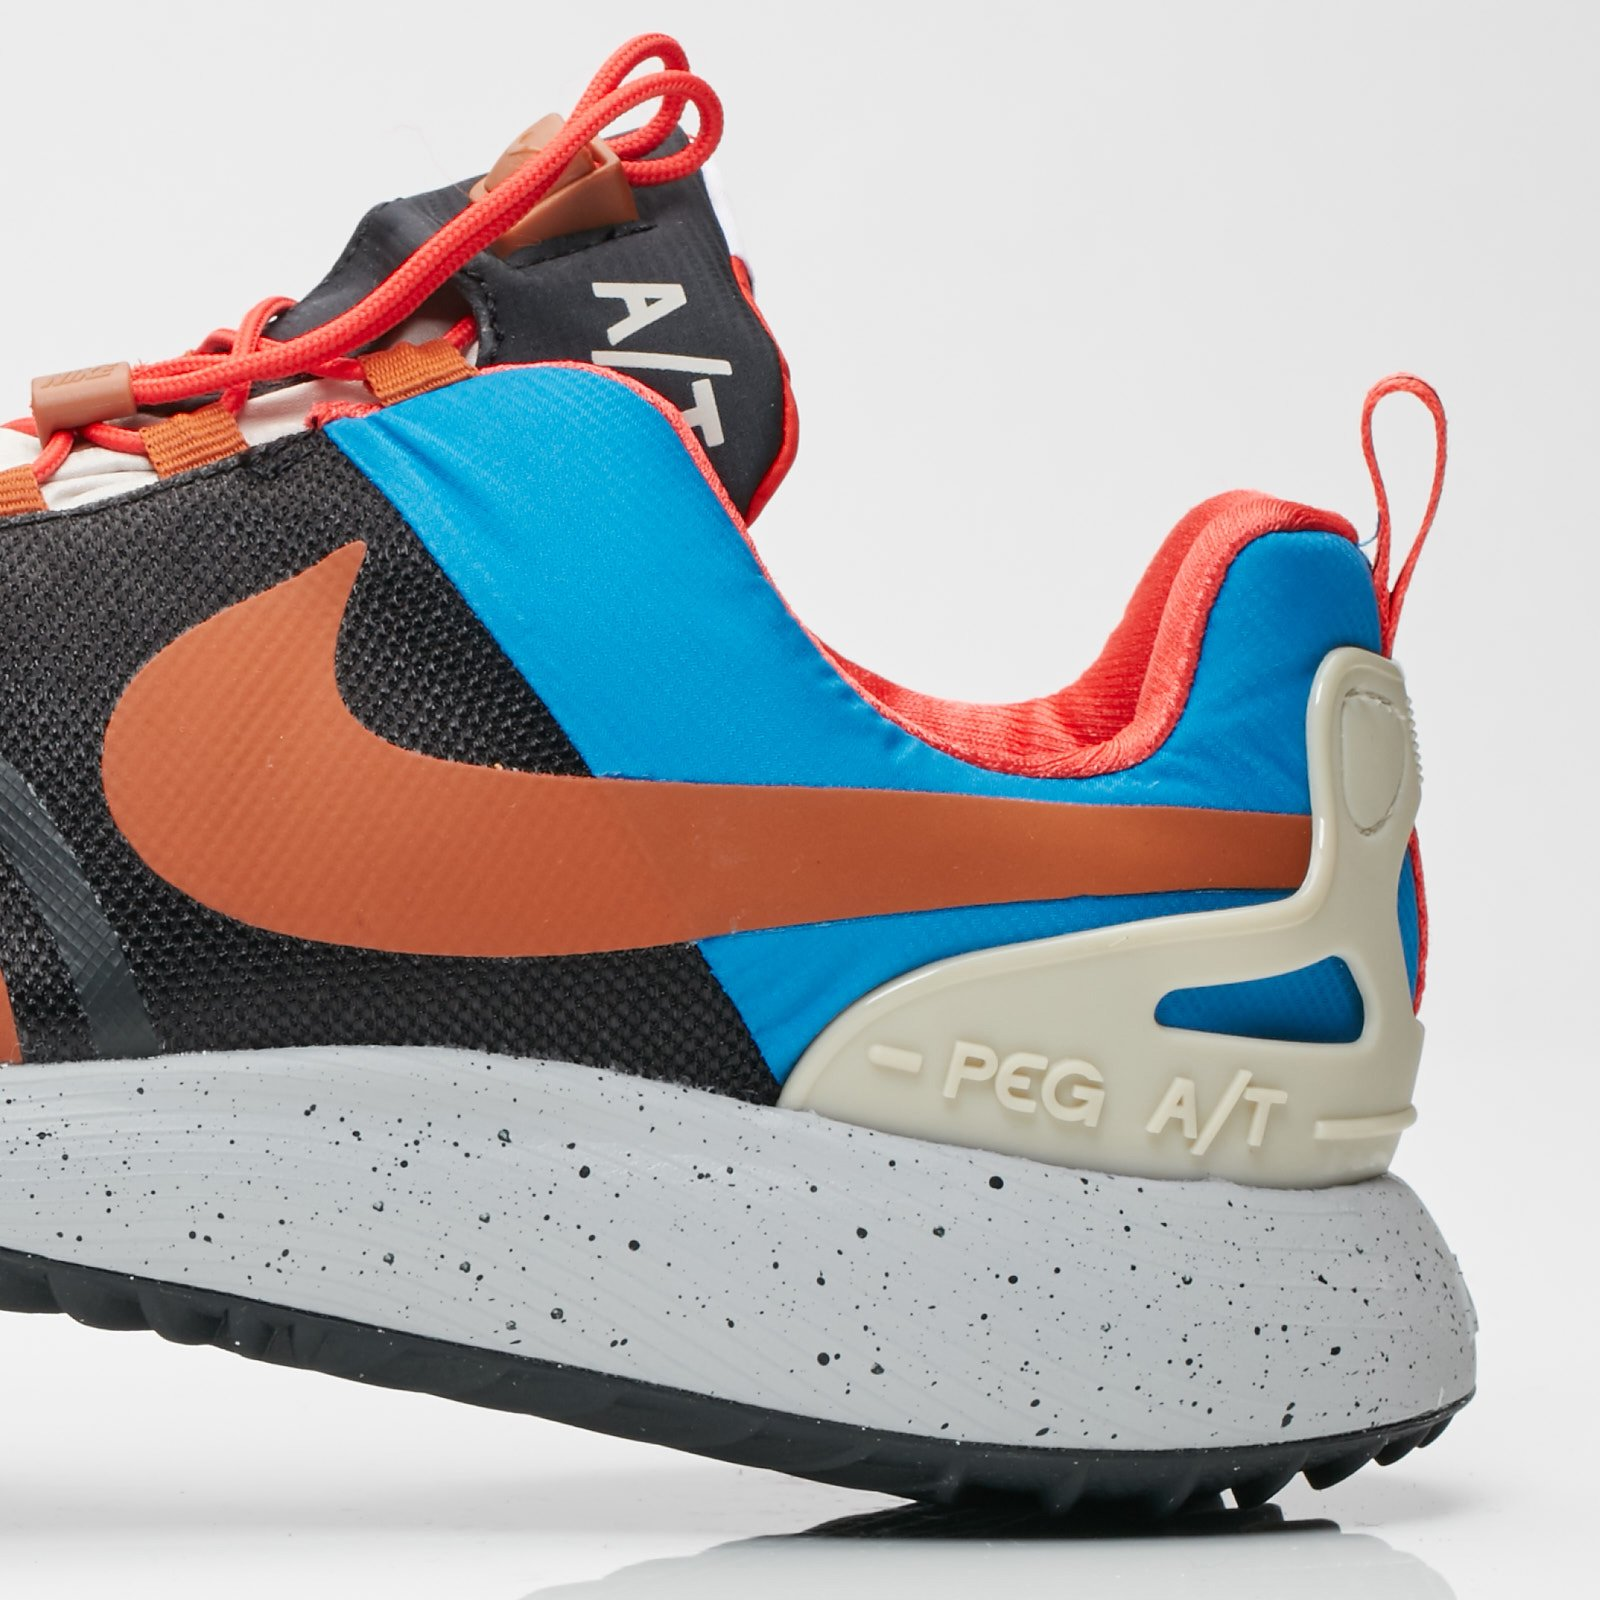 nike pegasus a/t winter